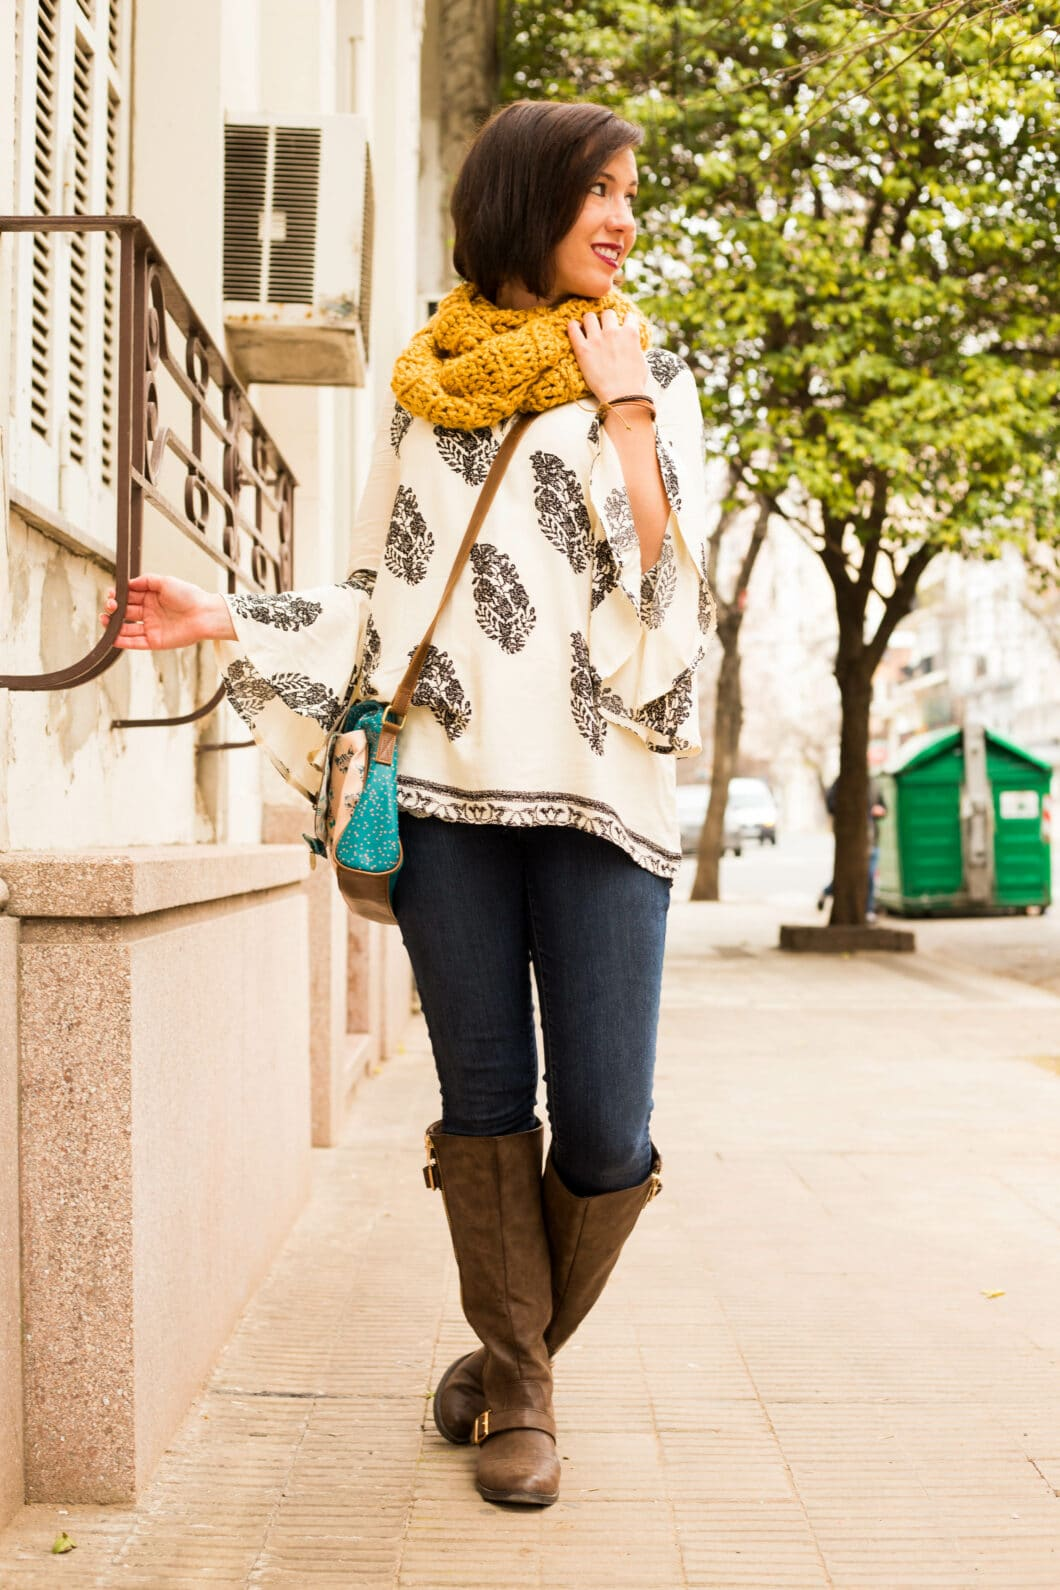 One of my favorite outfits for cooler weather in Argentina. Shein top and ModCloth cat bag